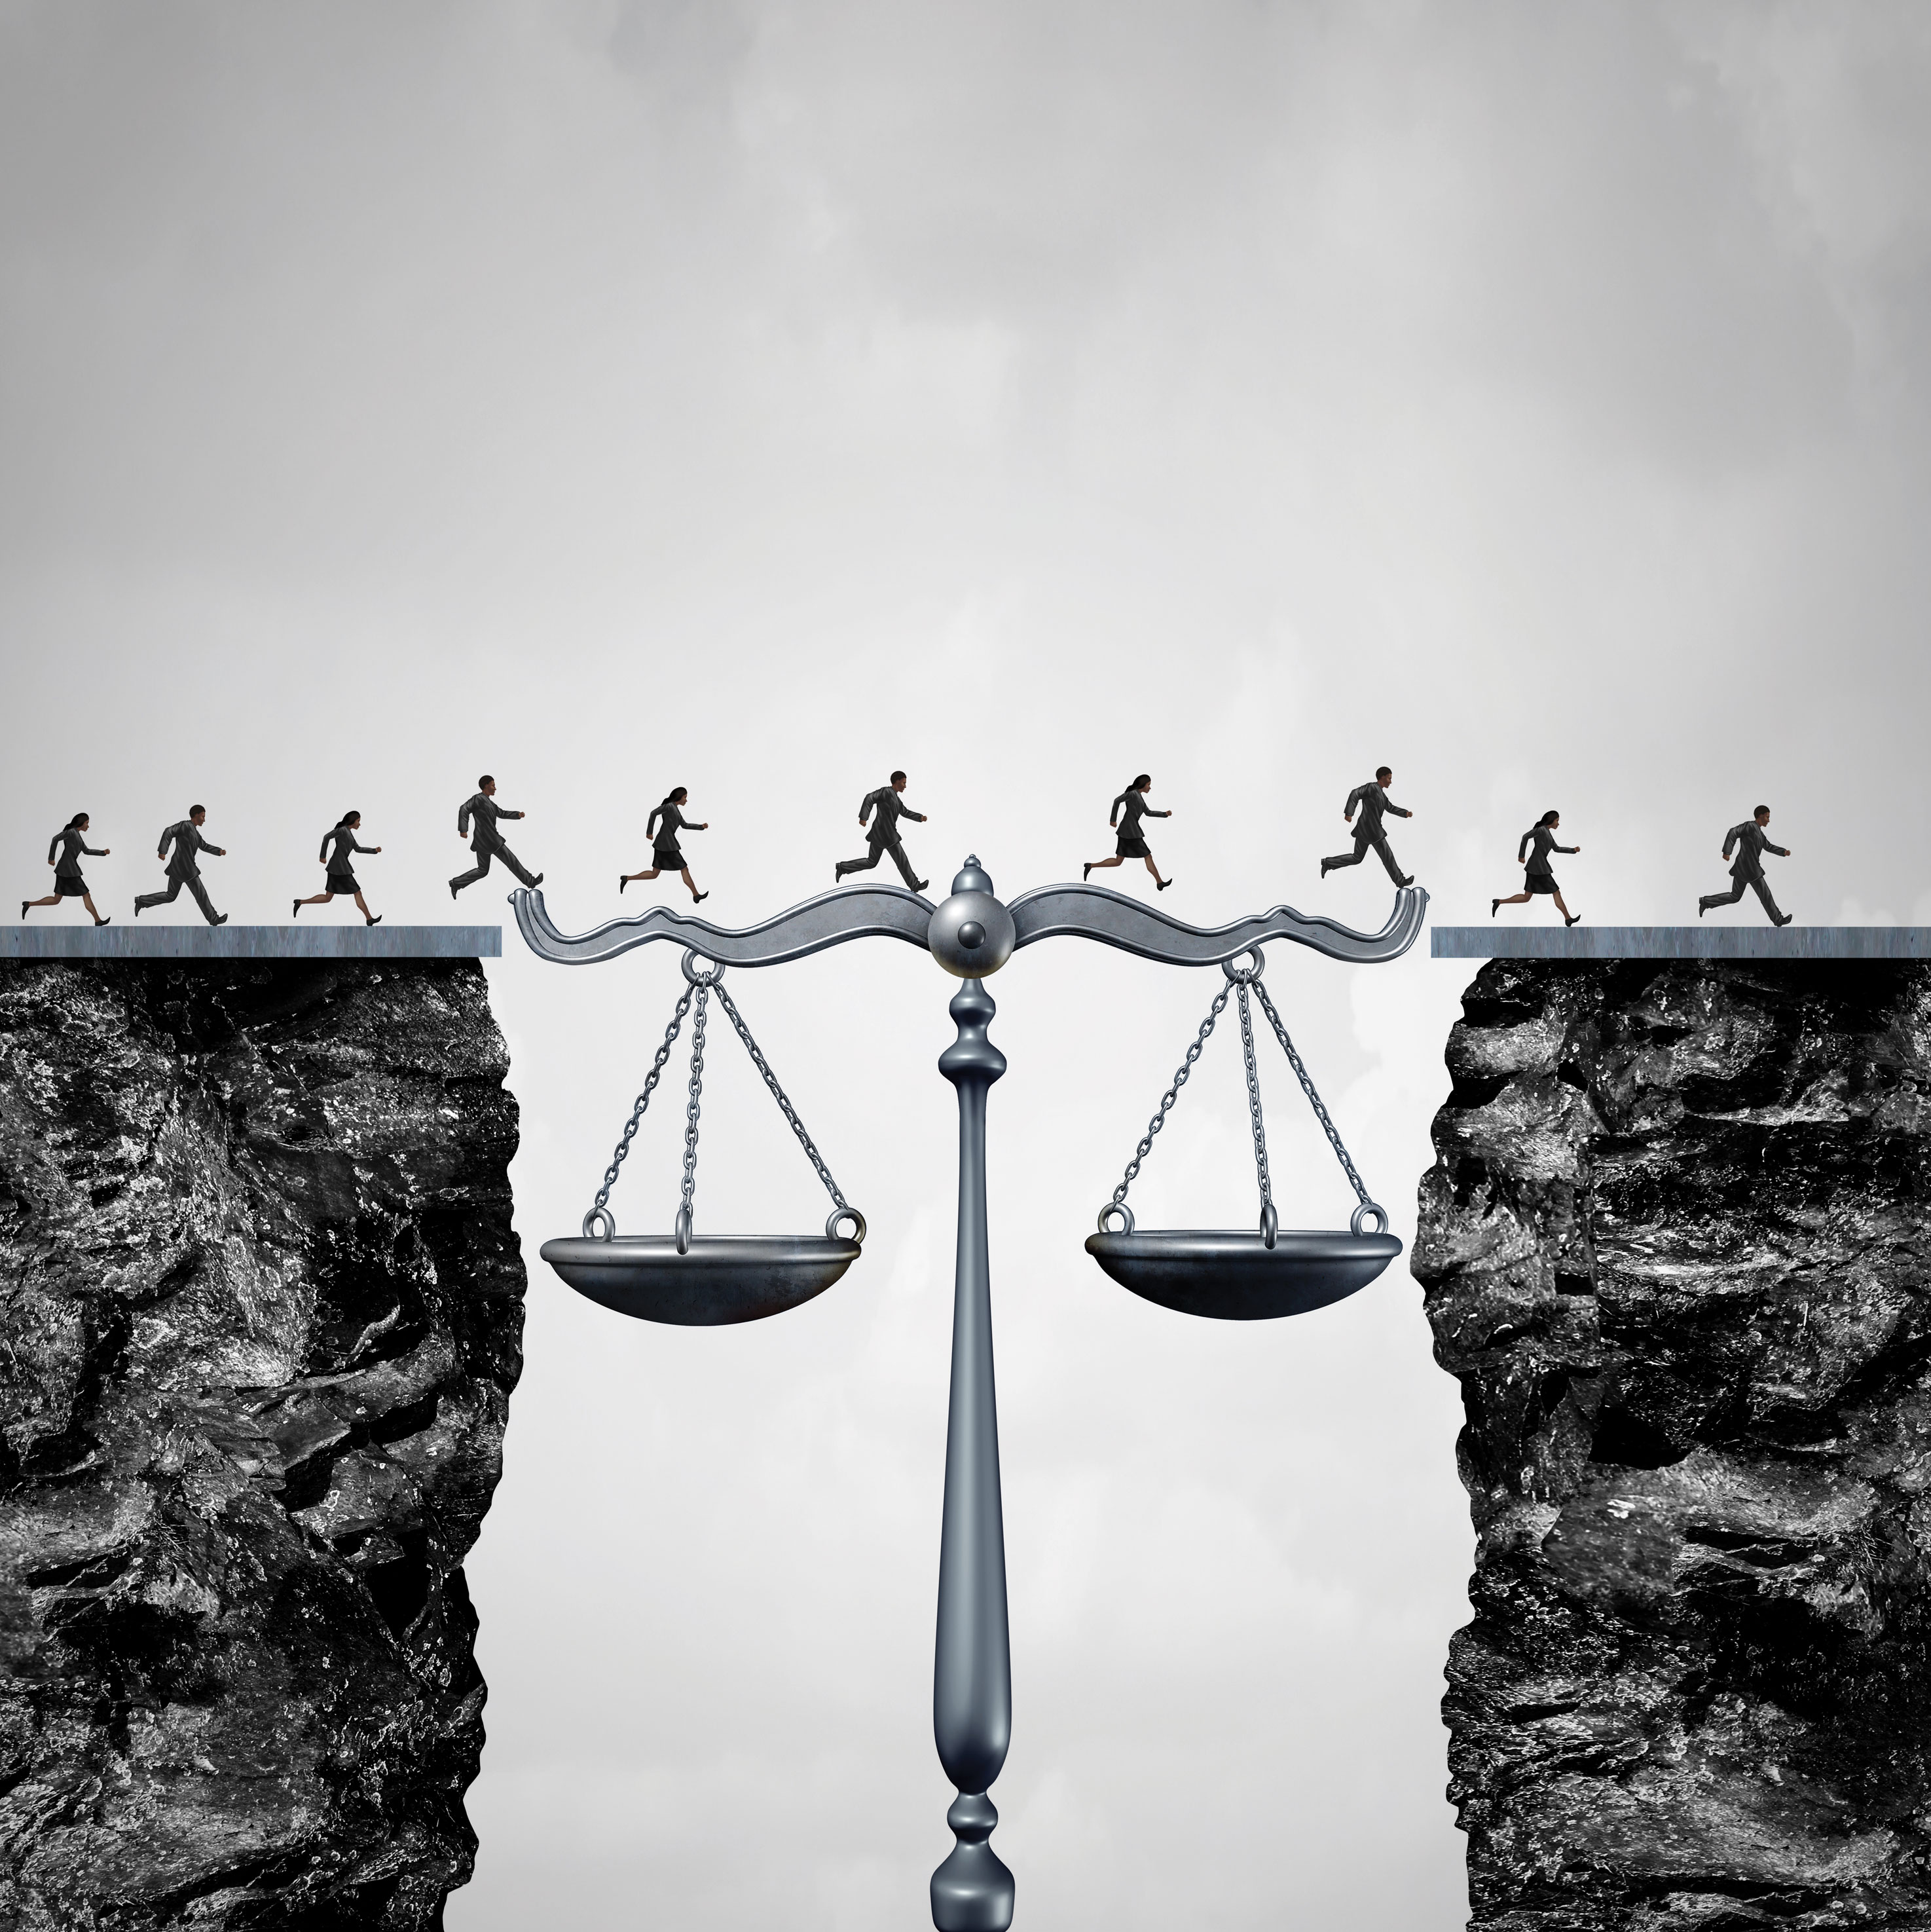 Illustration of people jumping across a gap using the scales of justice as a bridge